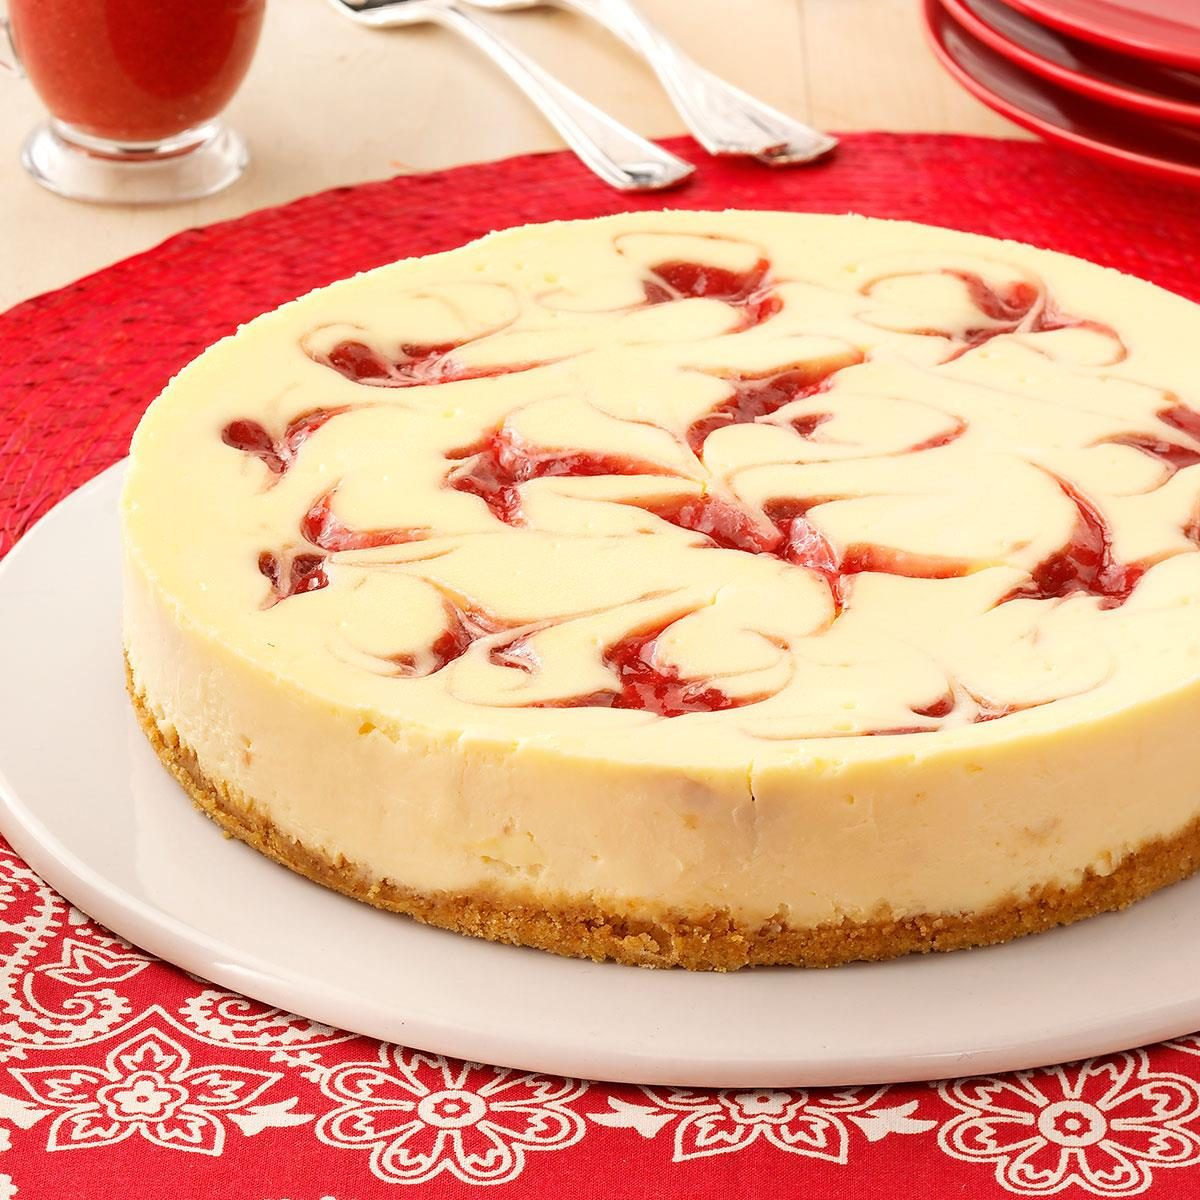 Strawberry Cheesecake Swirl Recipe | Taste of Home